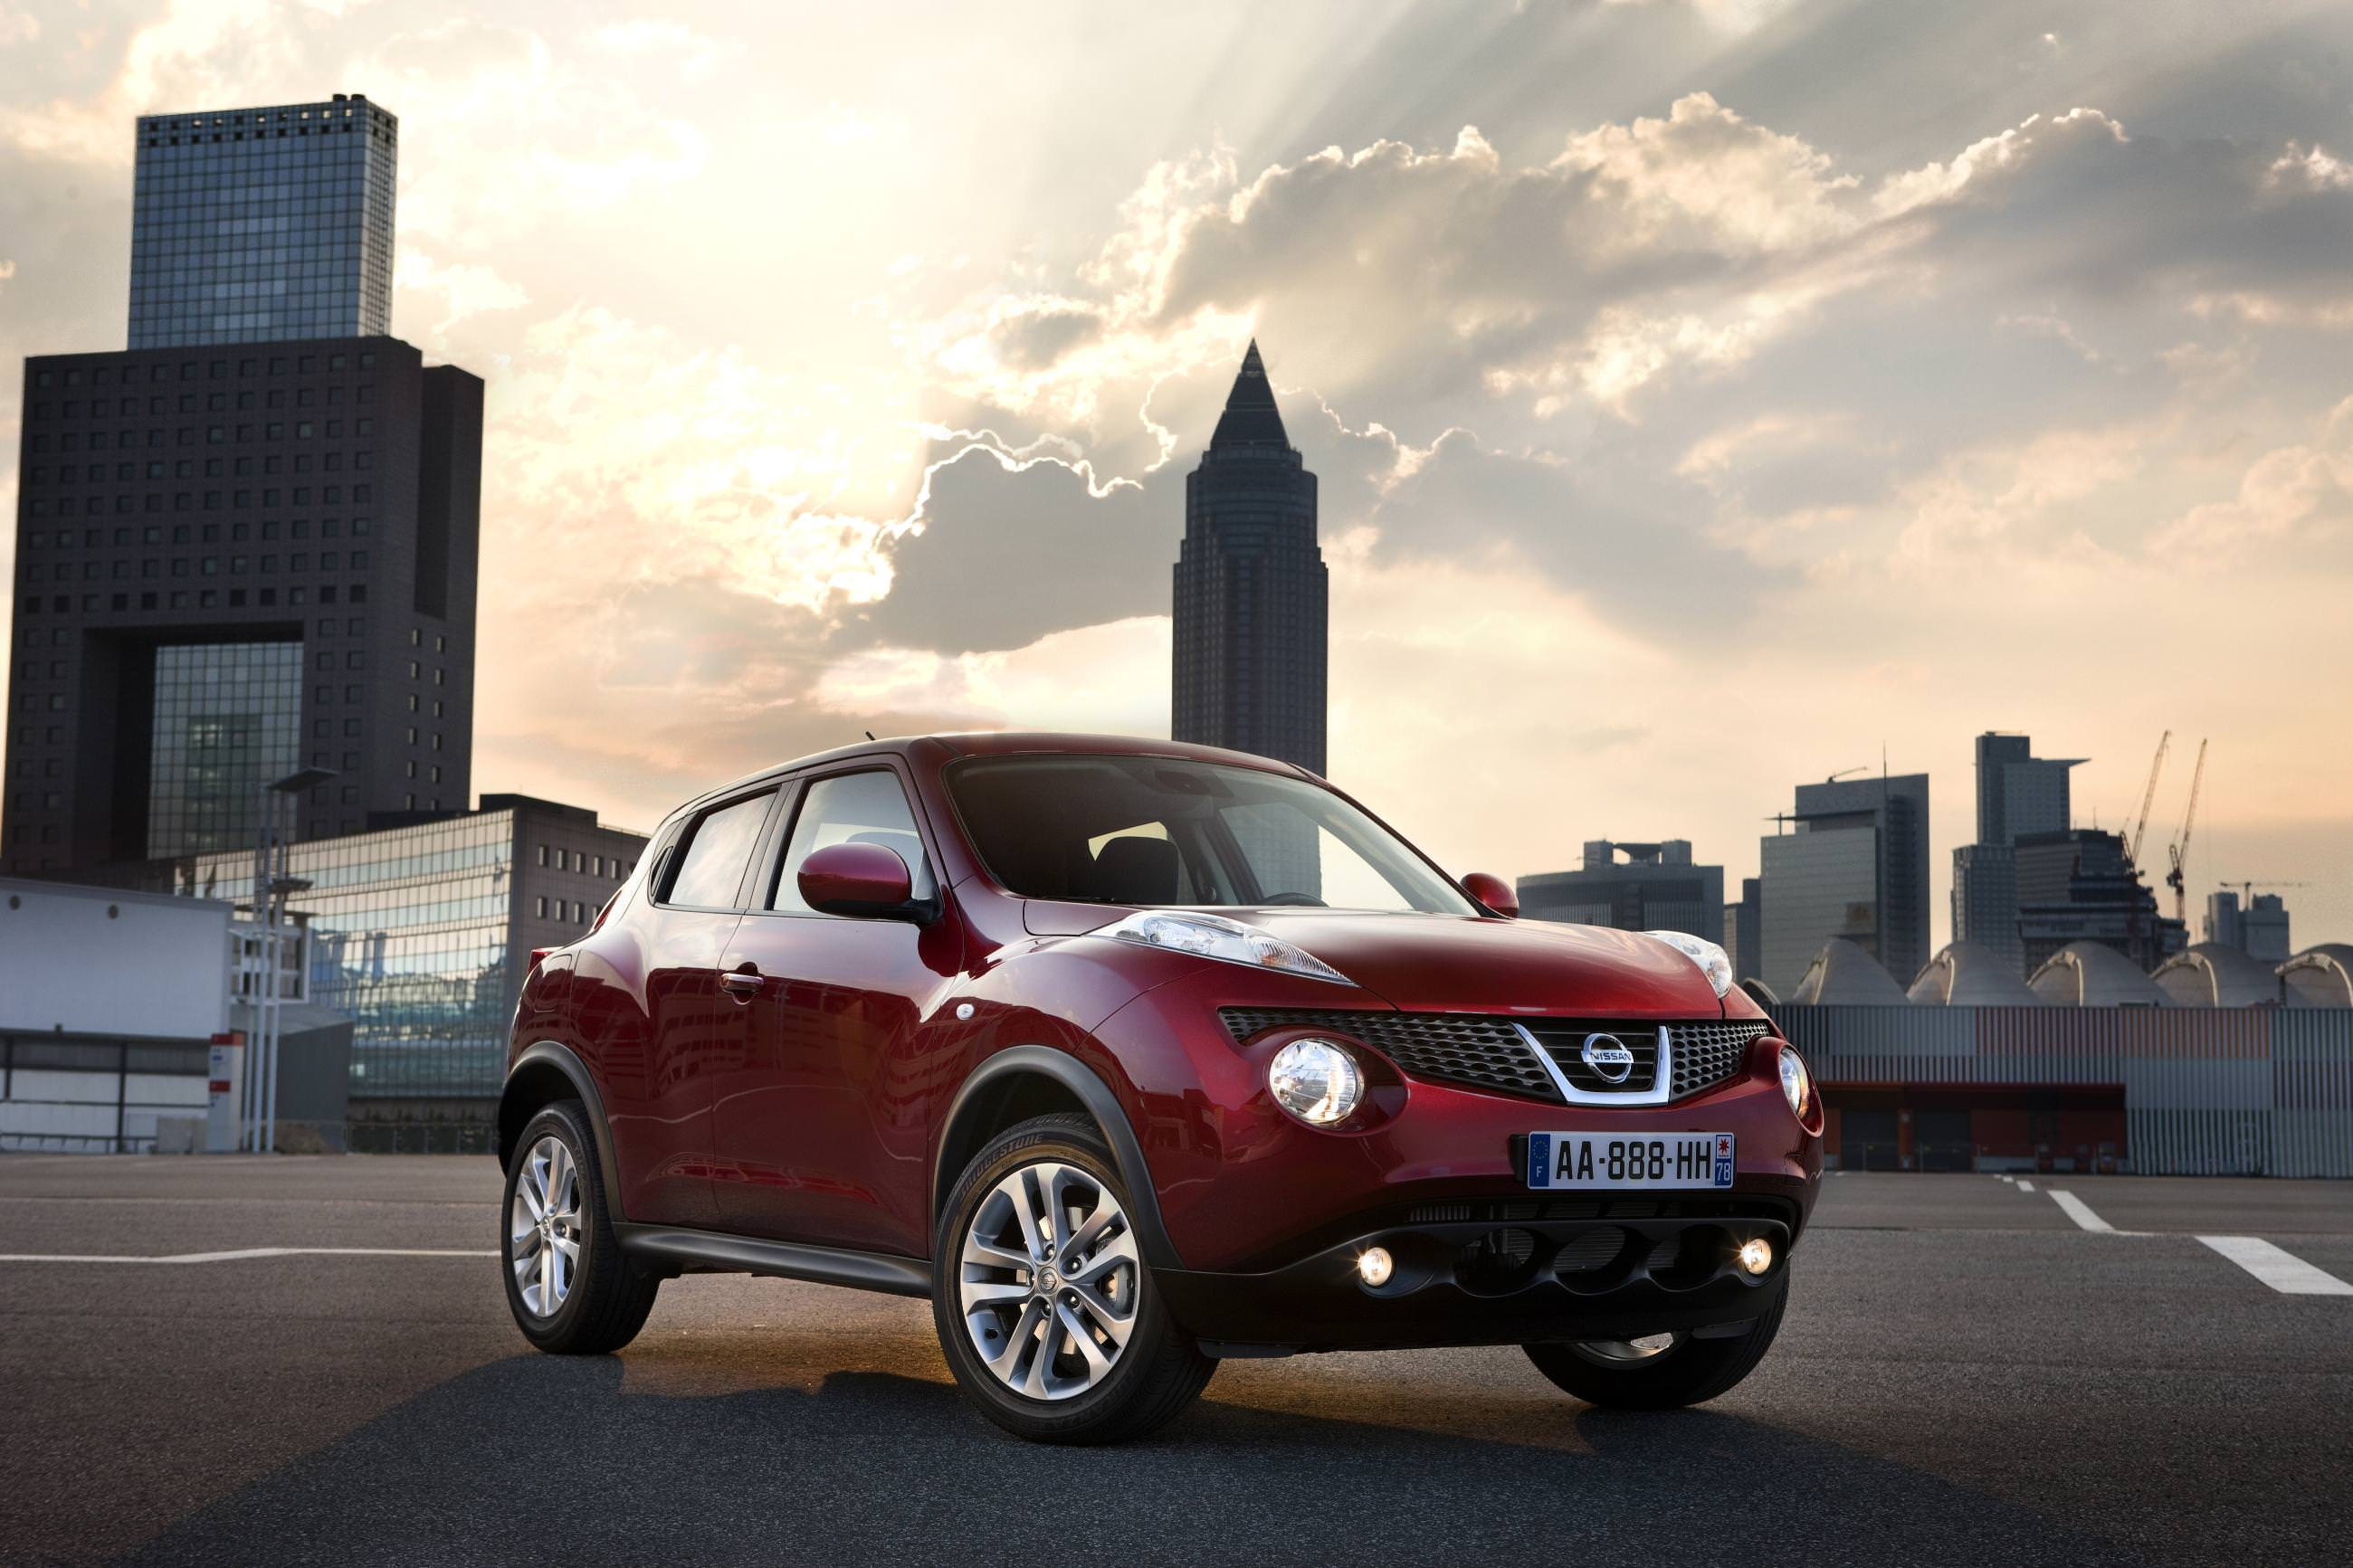 Used Car Buying Guide: Nissan Juke (2010 to present